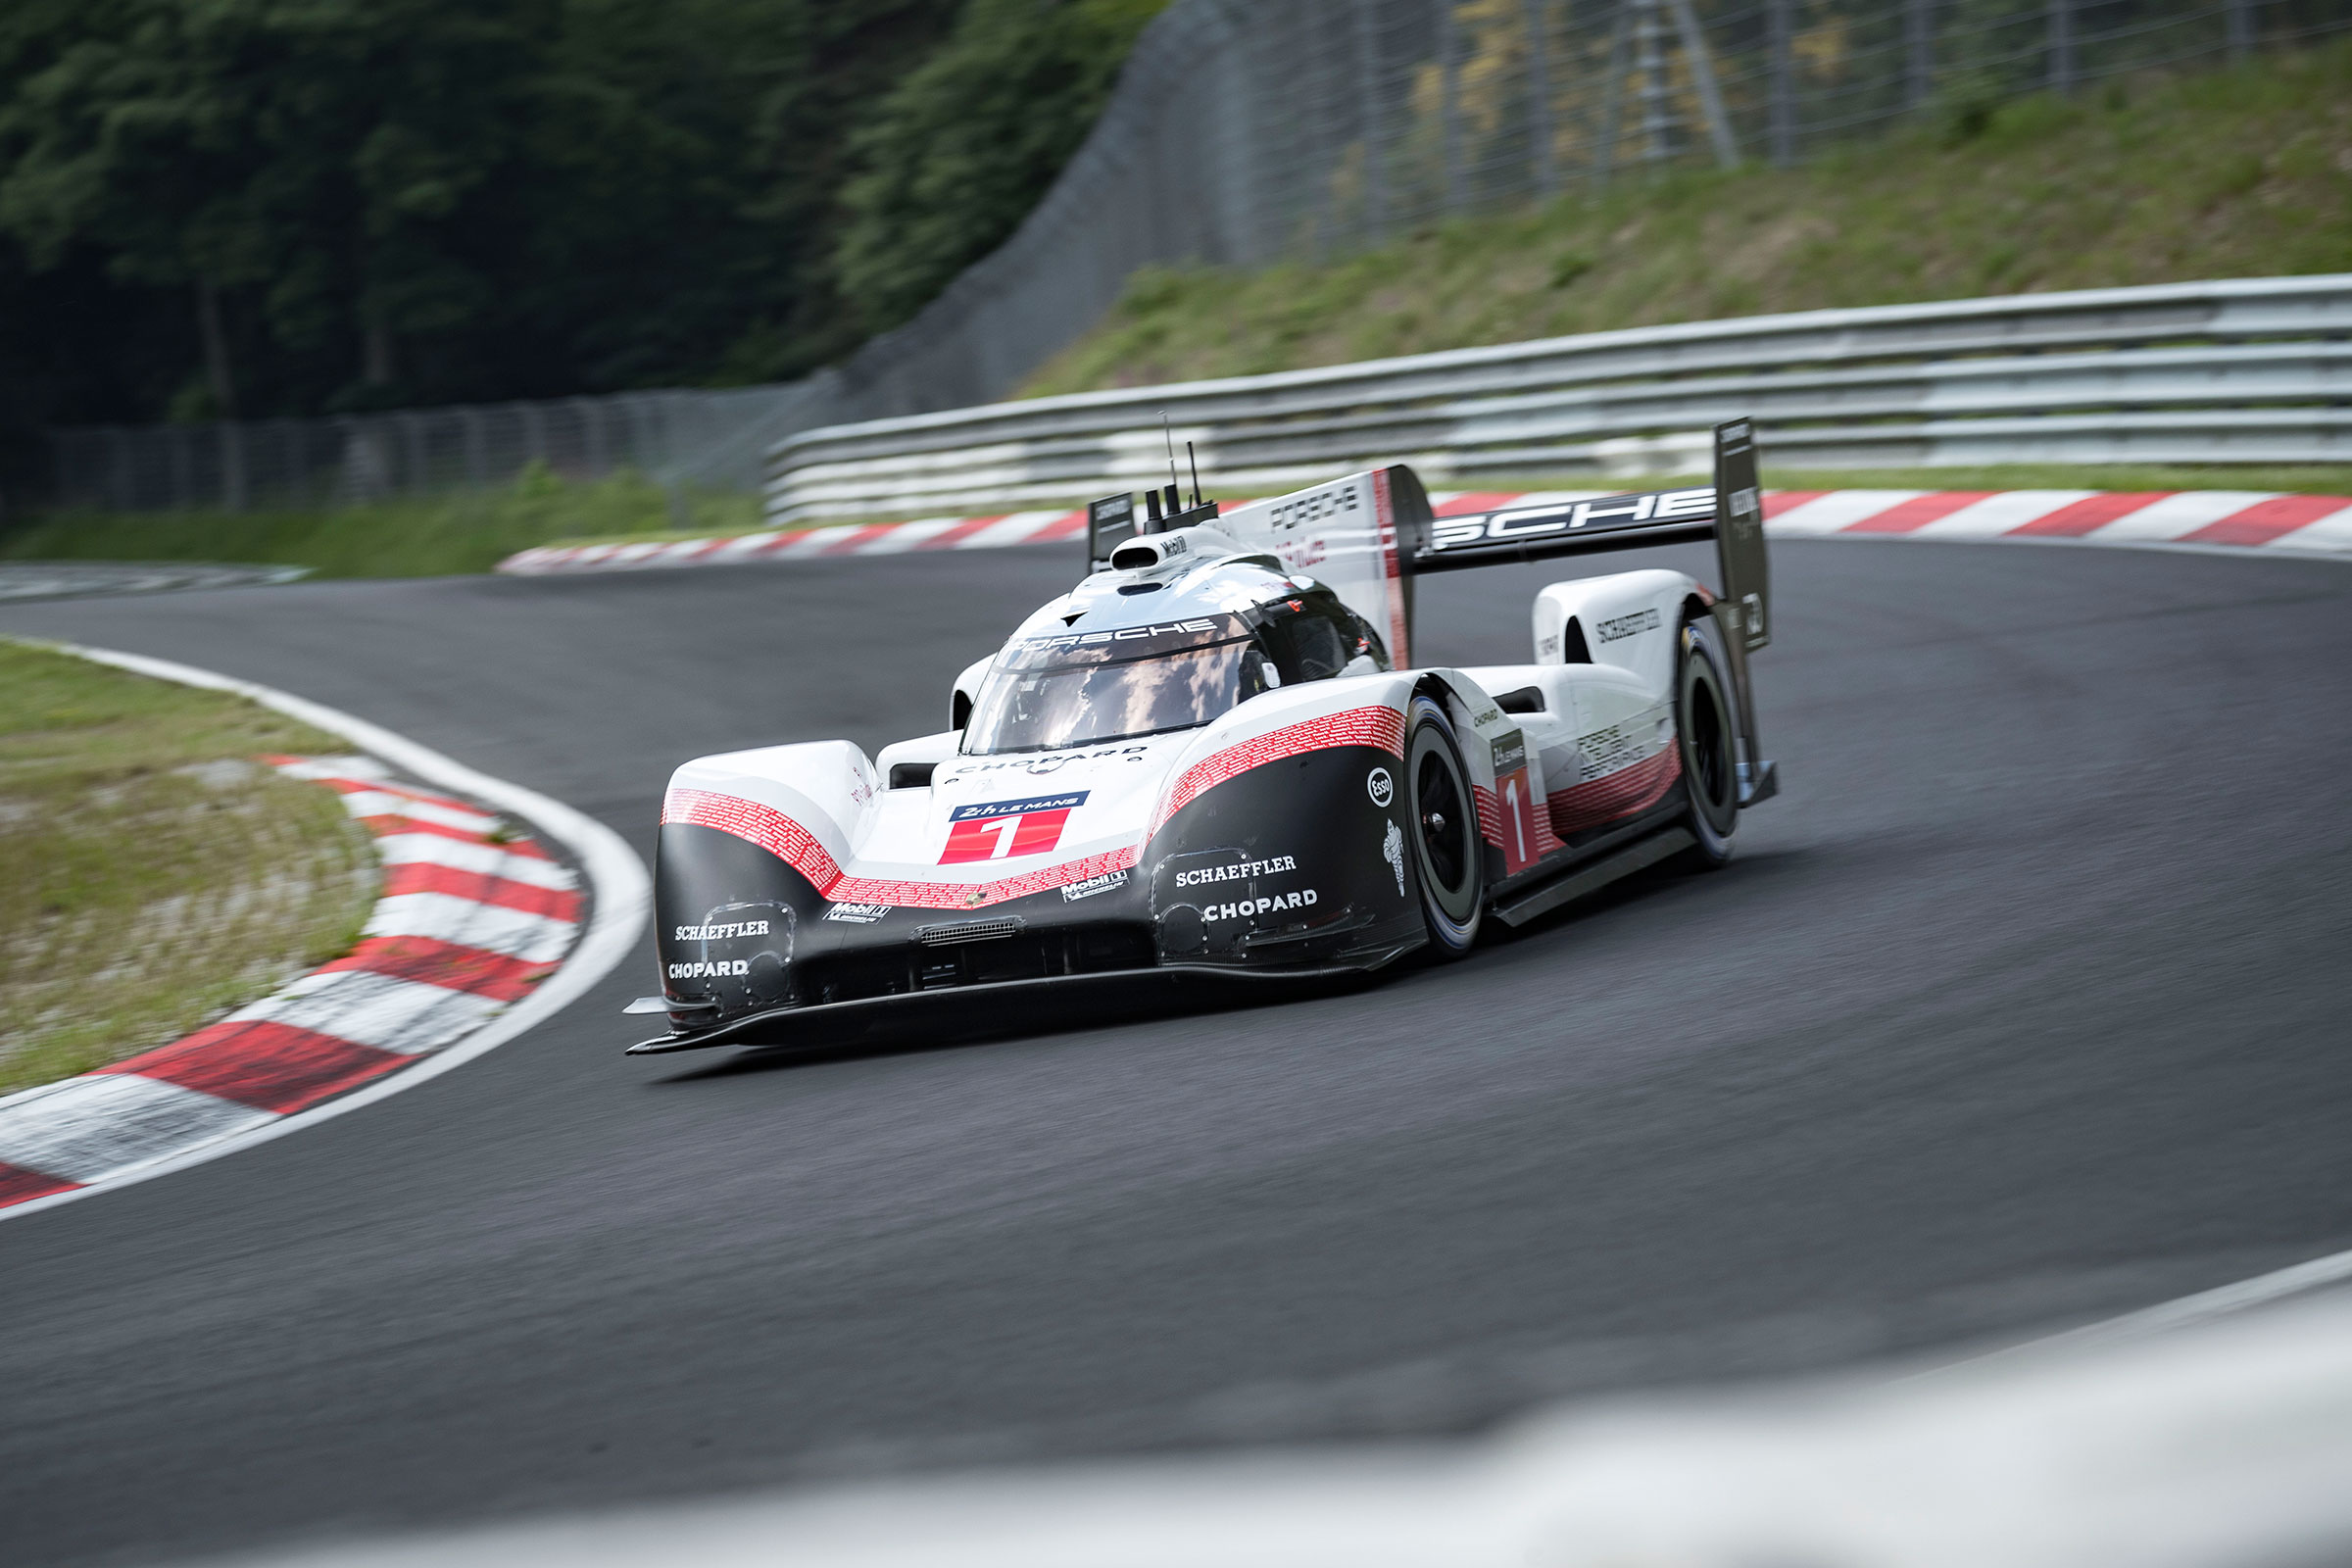 Porsche 919 Evo officially laps the \u0027Ring in 519.5 smashing